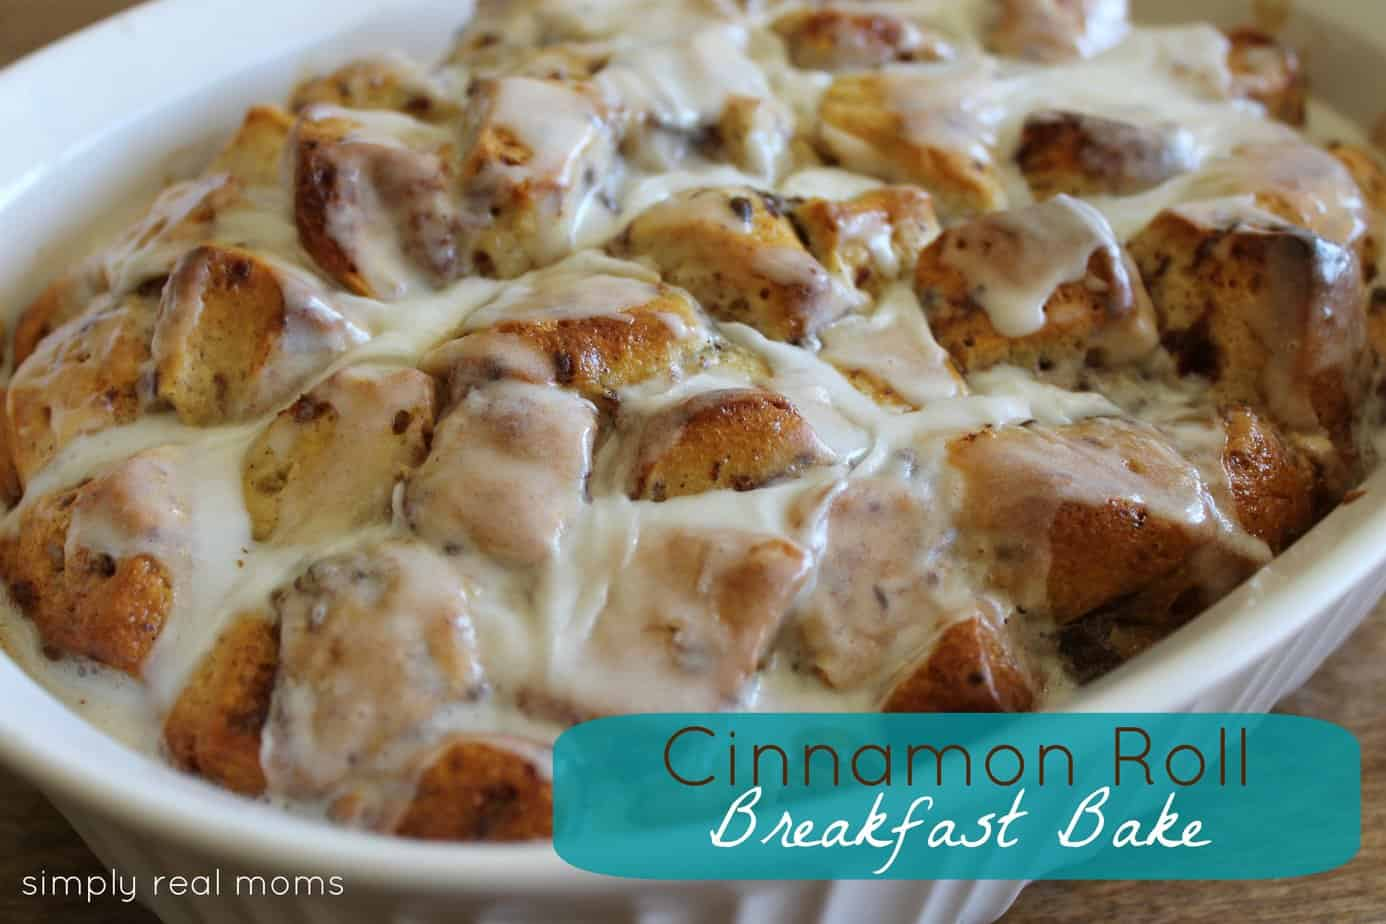 Cinnamon Roll Breakfast Bake 3